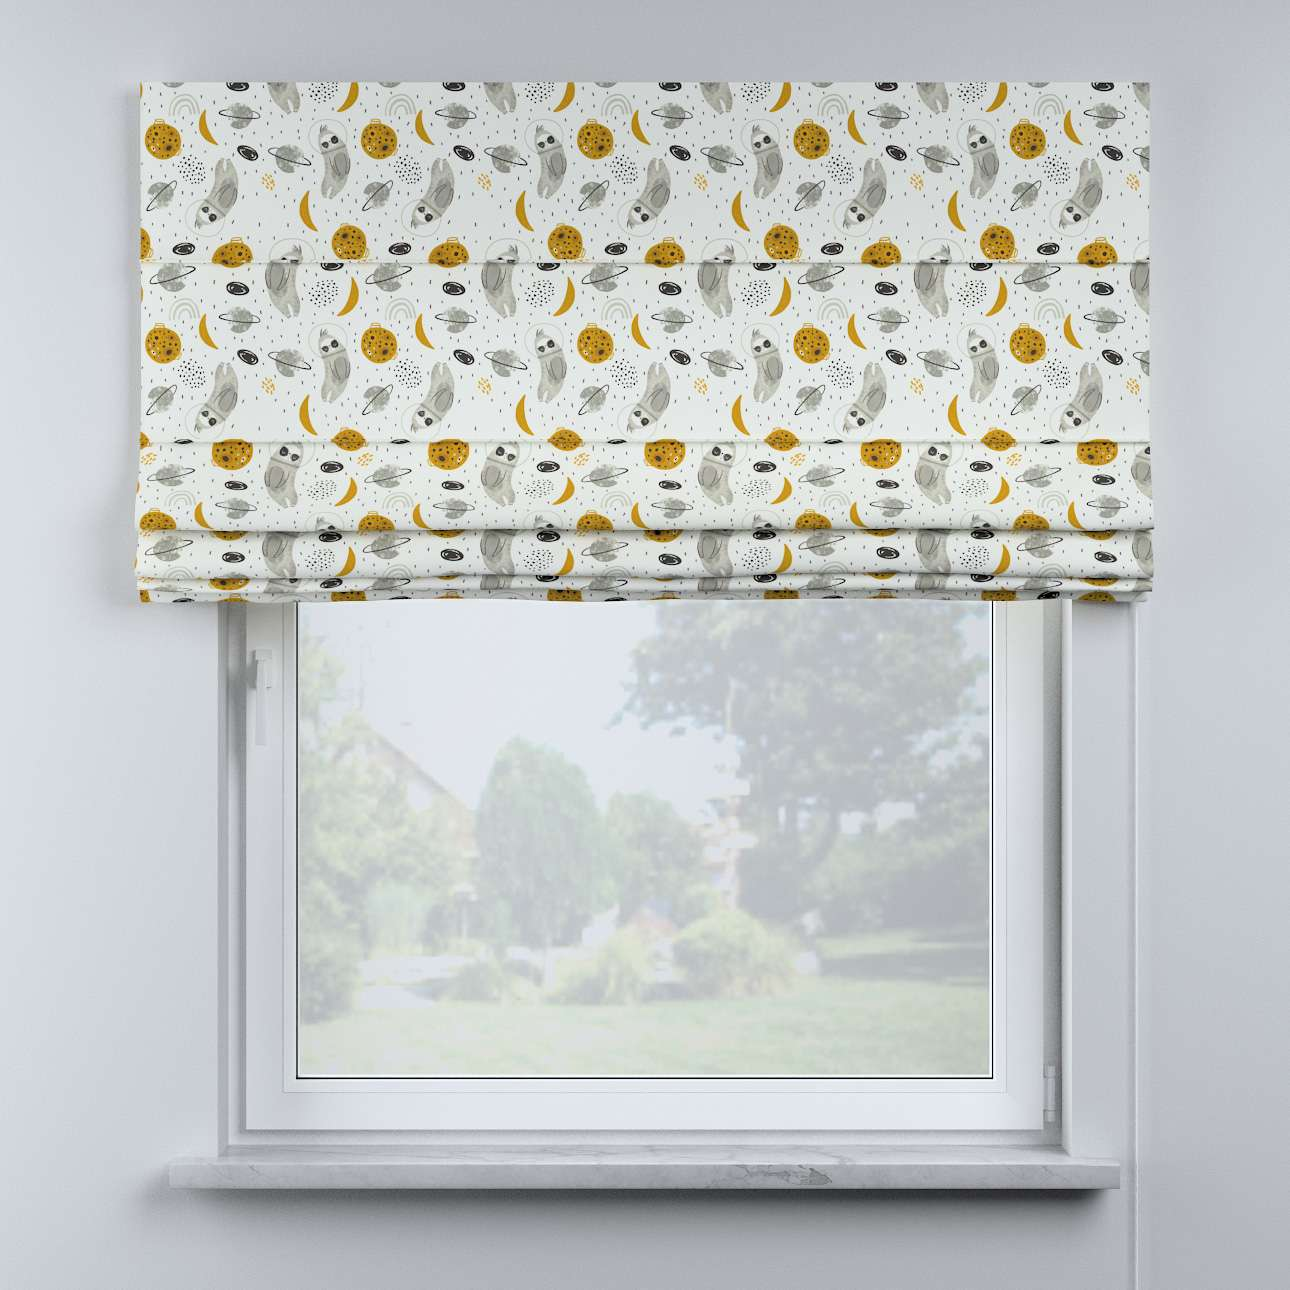 Billie roman blind in collection Magic Collection, fabric: 500-44